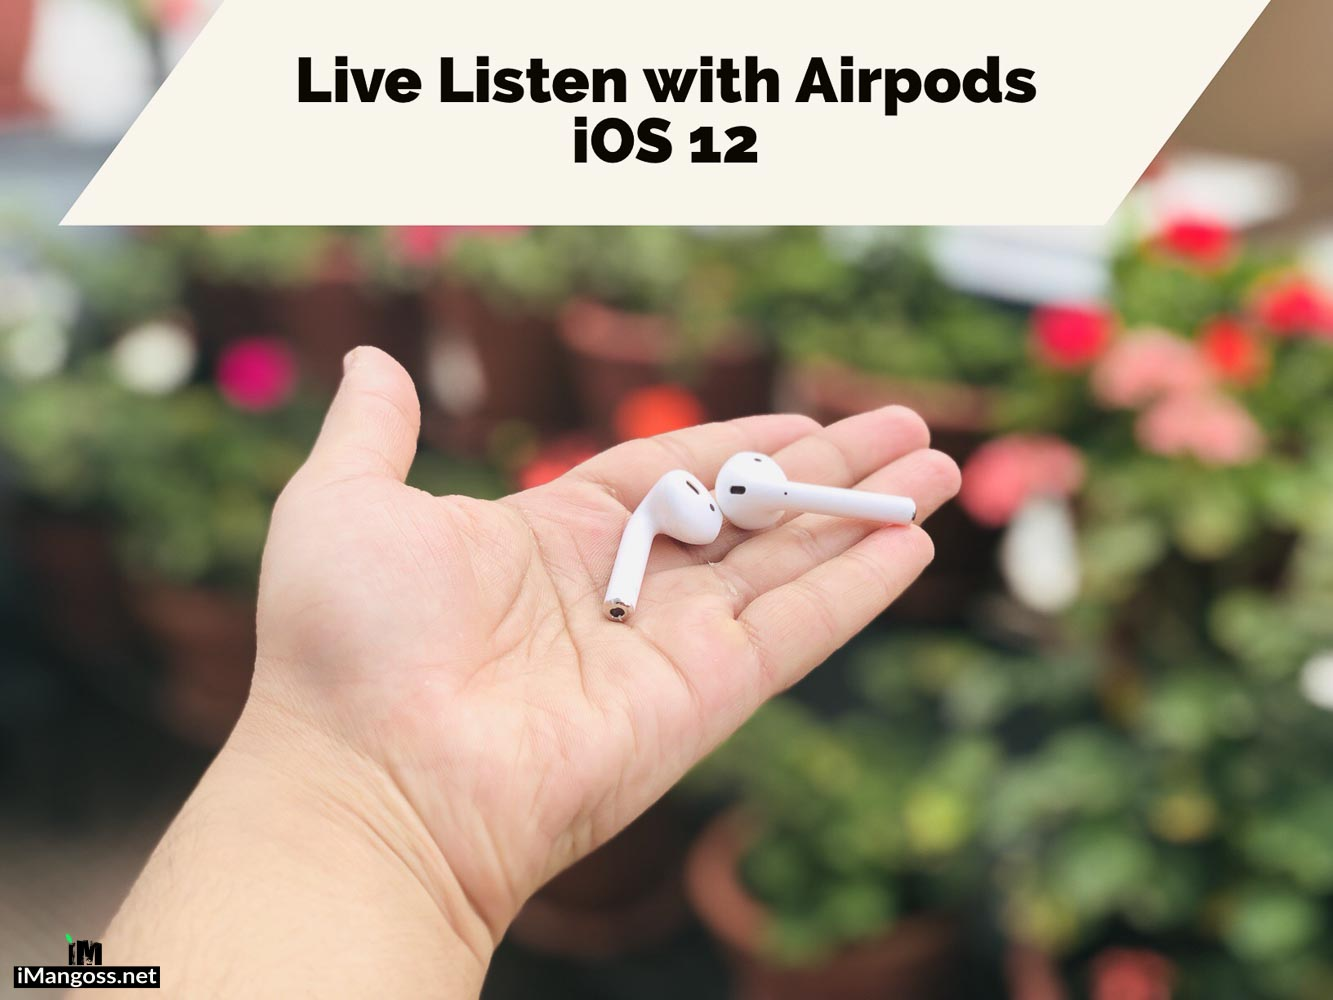 live listen feature in ios 12